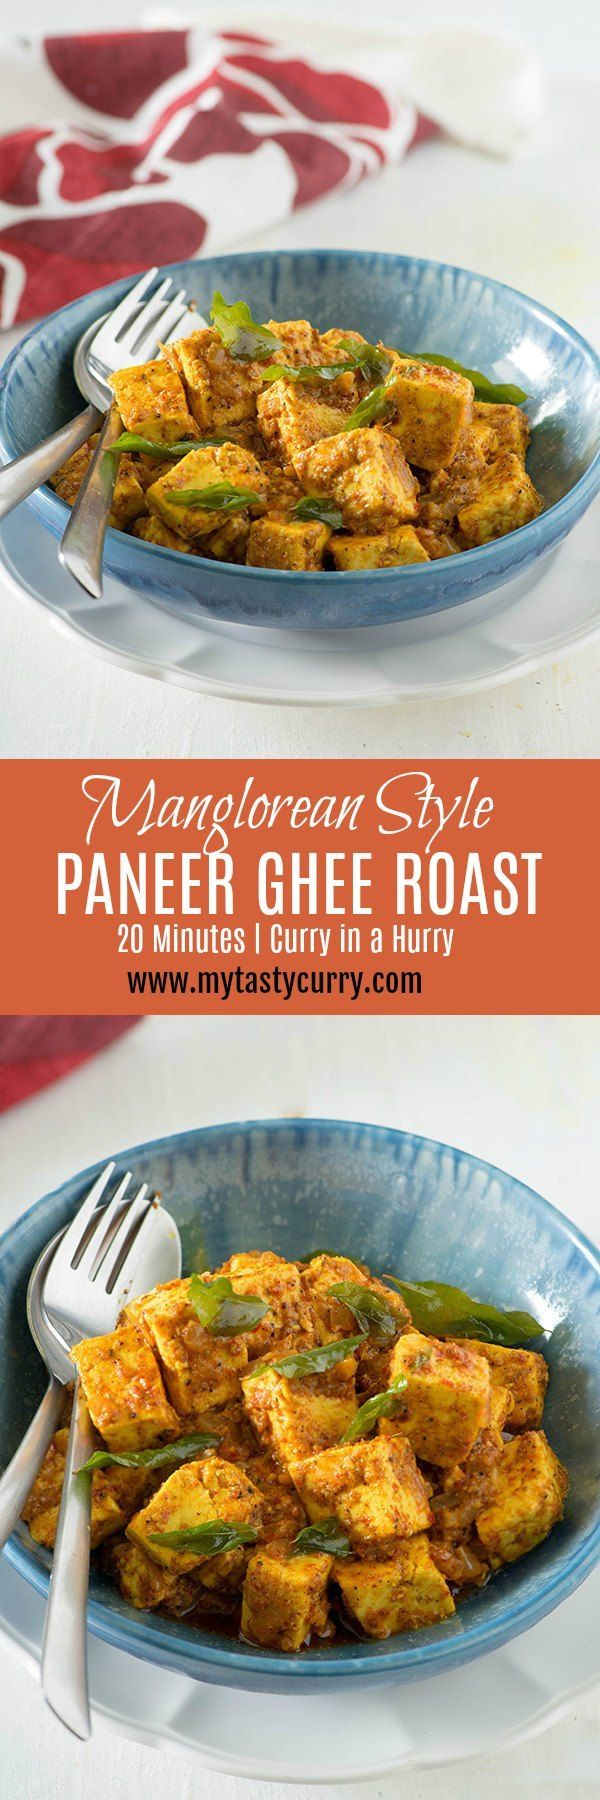 Paneer ghee roast is mangalore style ghee roast recipe adapted from very popular Mangalore chicken ghee roast recipe. A rich and hearty paneer ghee roast can be made dry to serve as an appetiser, semi dry or with gravy to serve as main dish.Paneer ghee roast is mangalore recipe adapted from very popular Mangalore chicken ghee roast recipe. A rich and hearty paneer ghee roast Indian curry